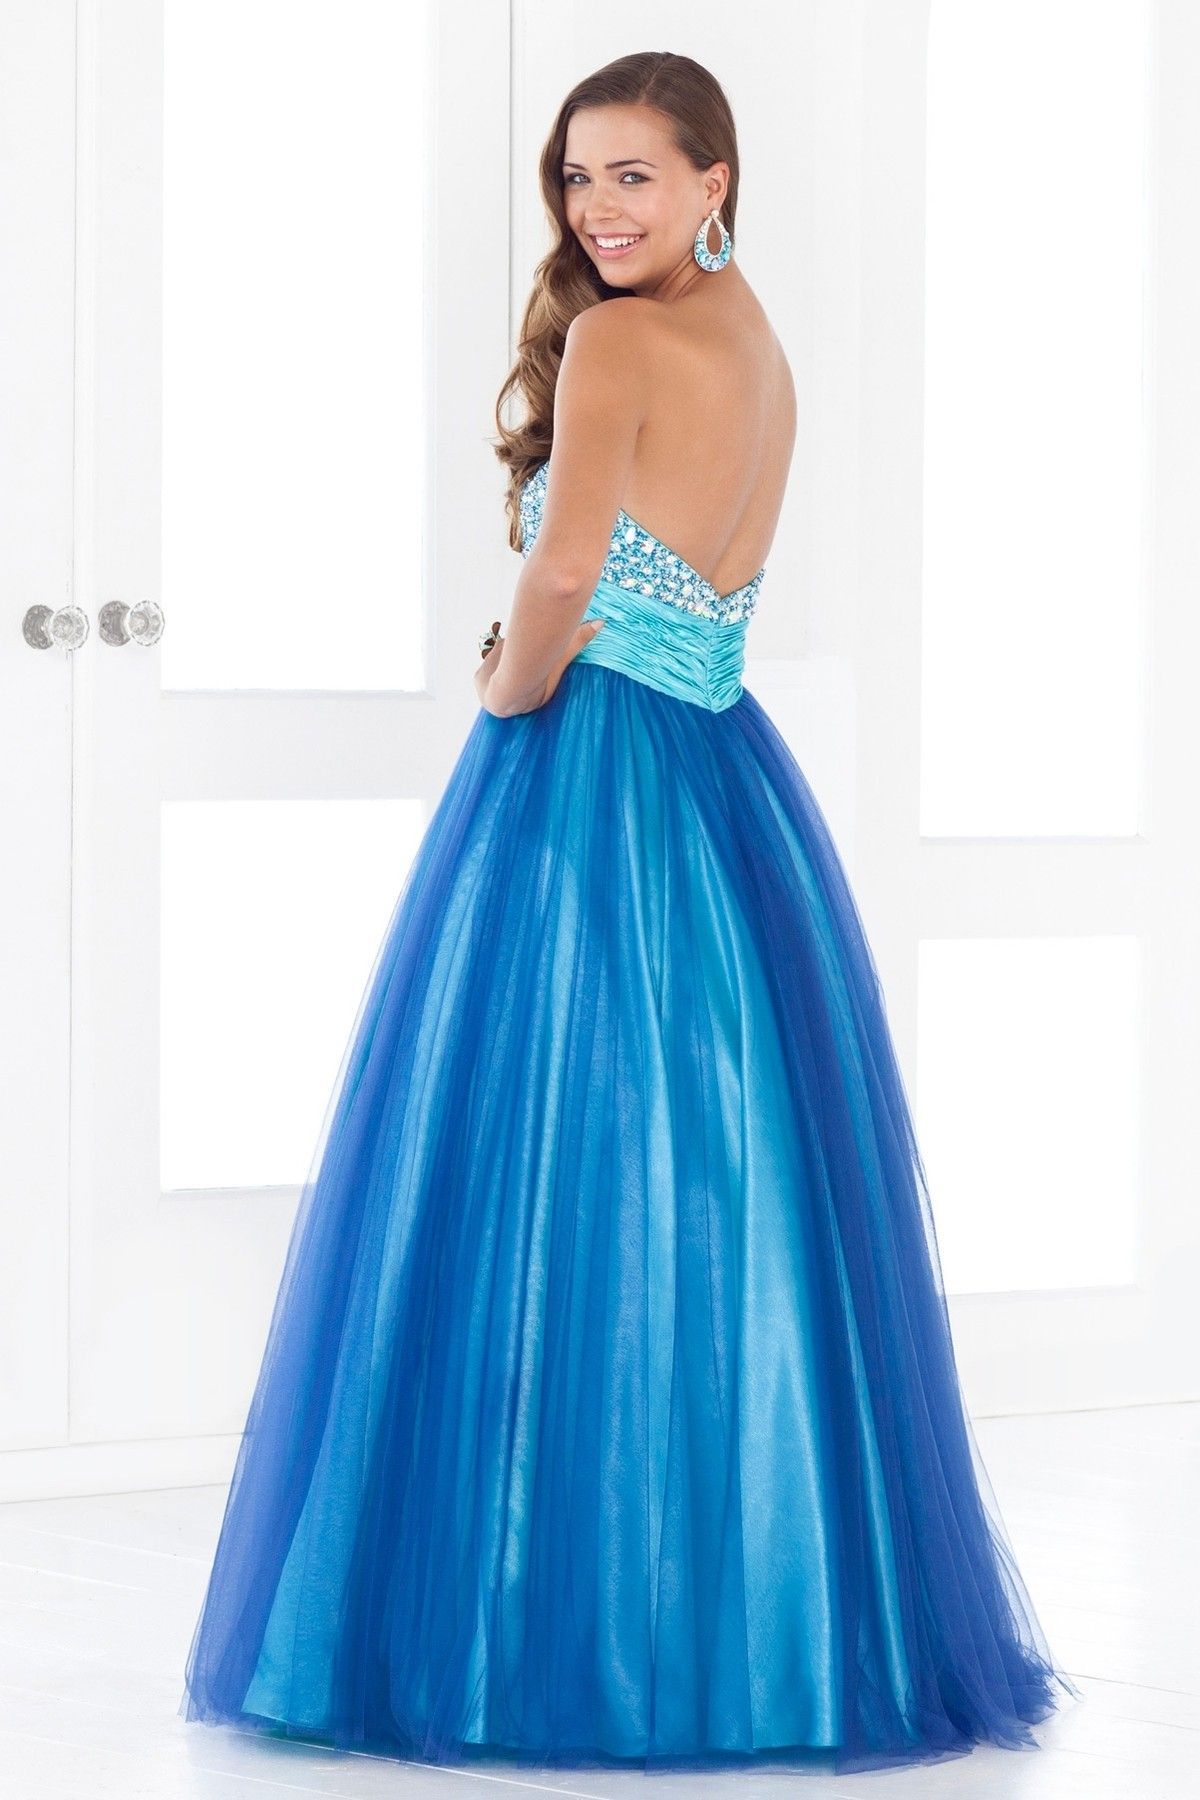 Prom Dresses 2014 | ... Sweetheart Ball Gown Prom Dress - Wedding ...